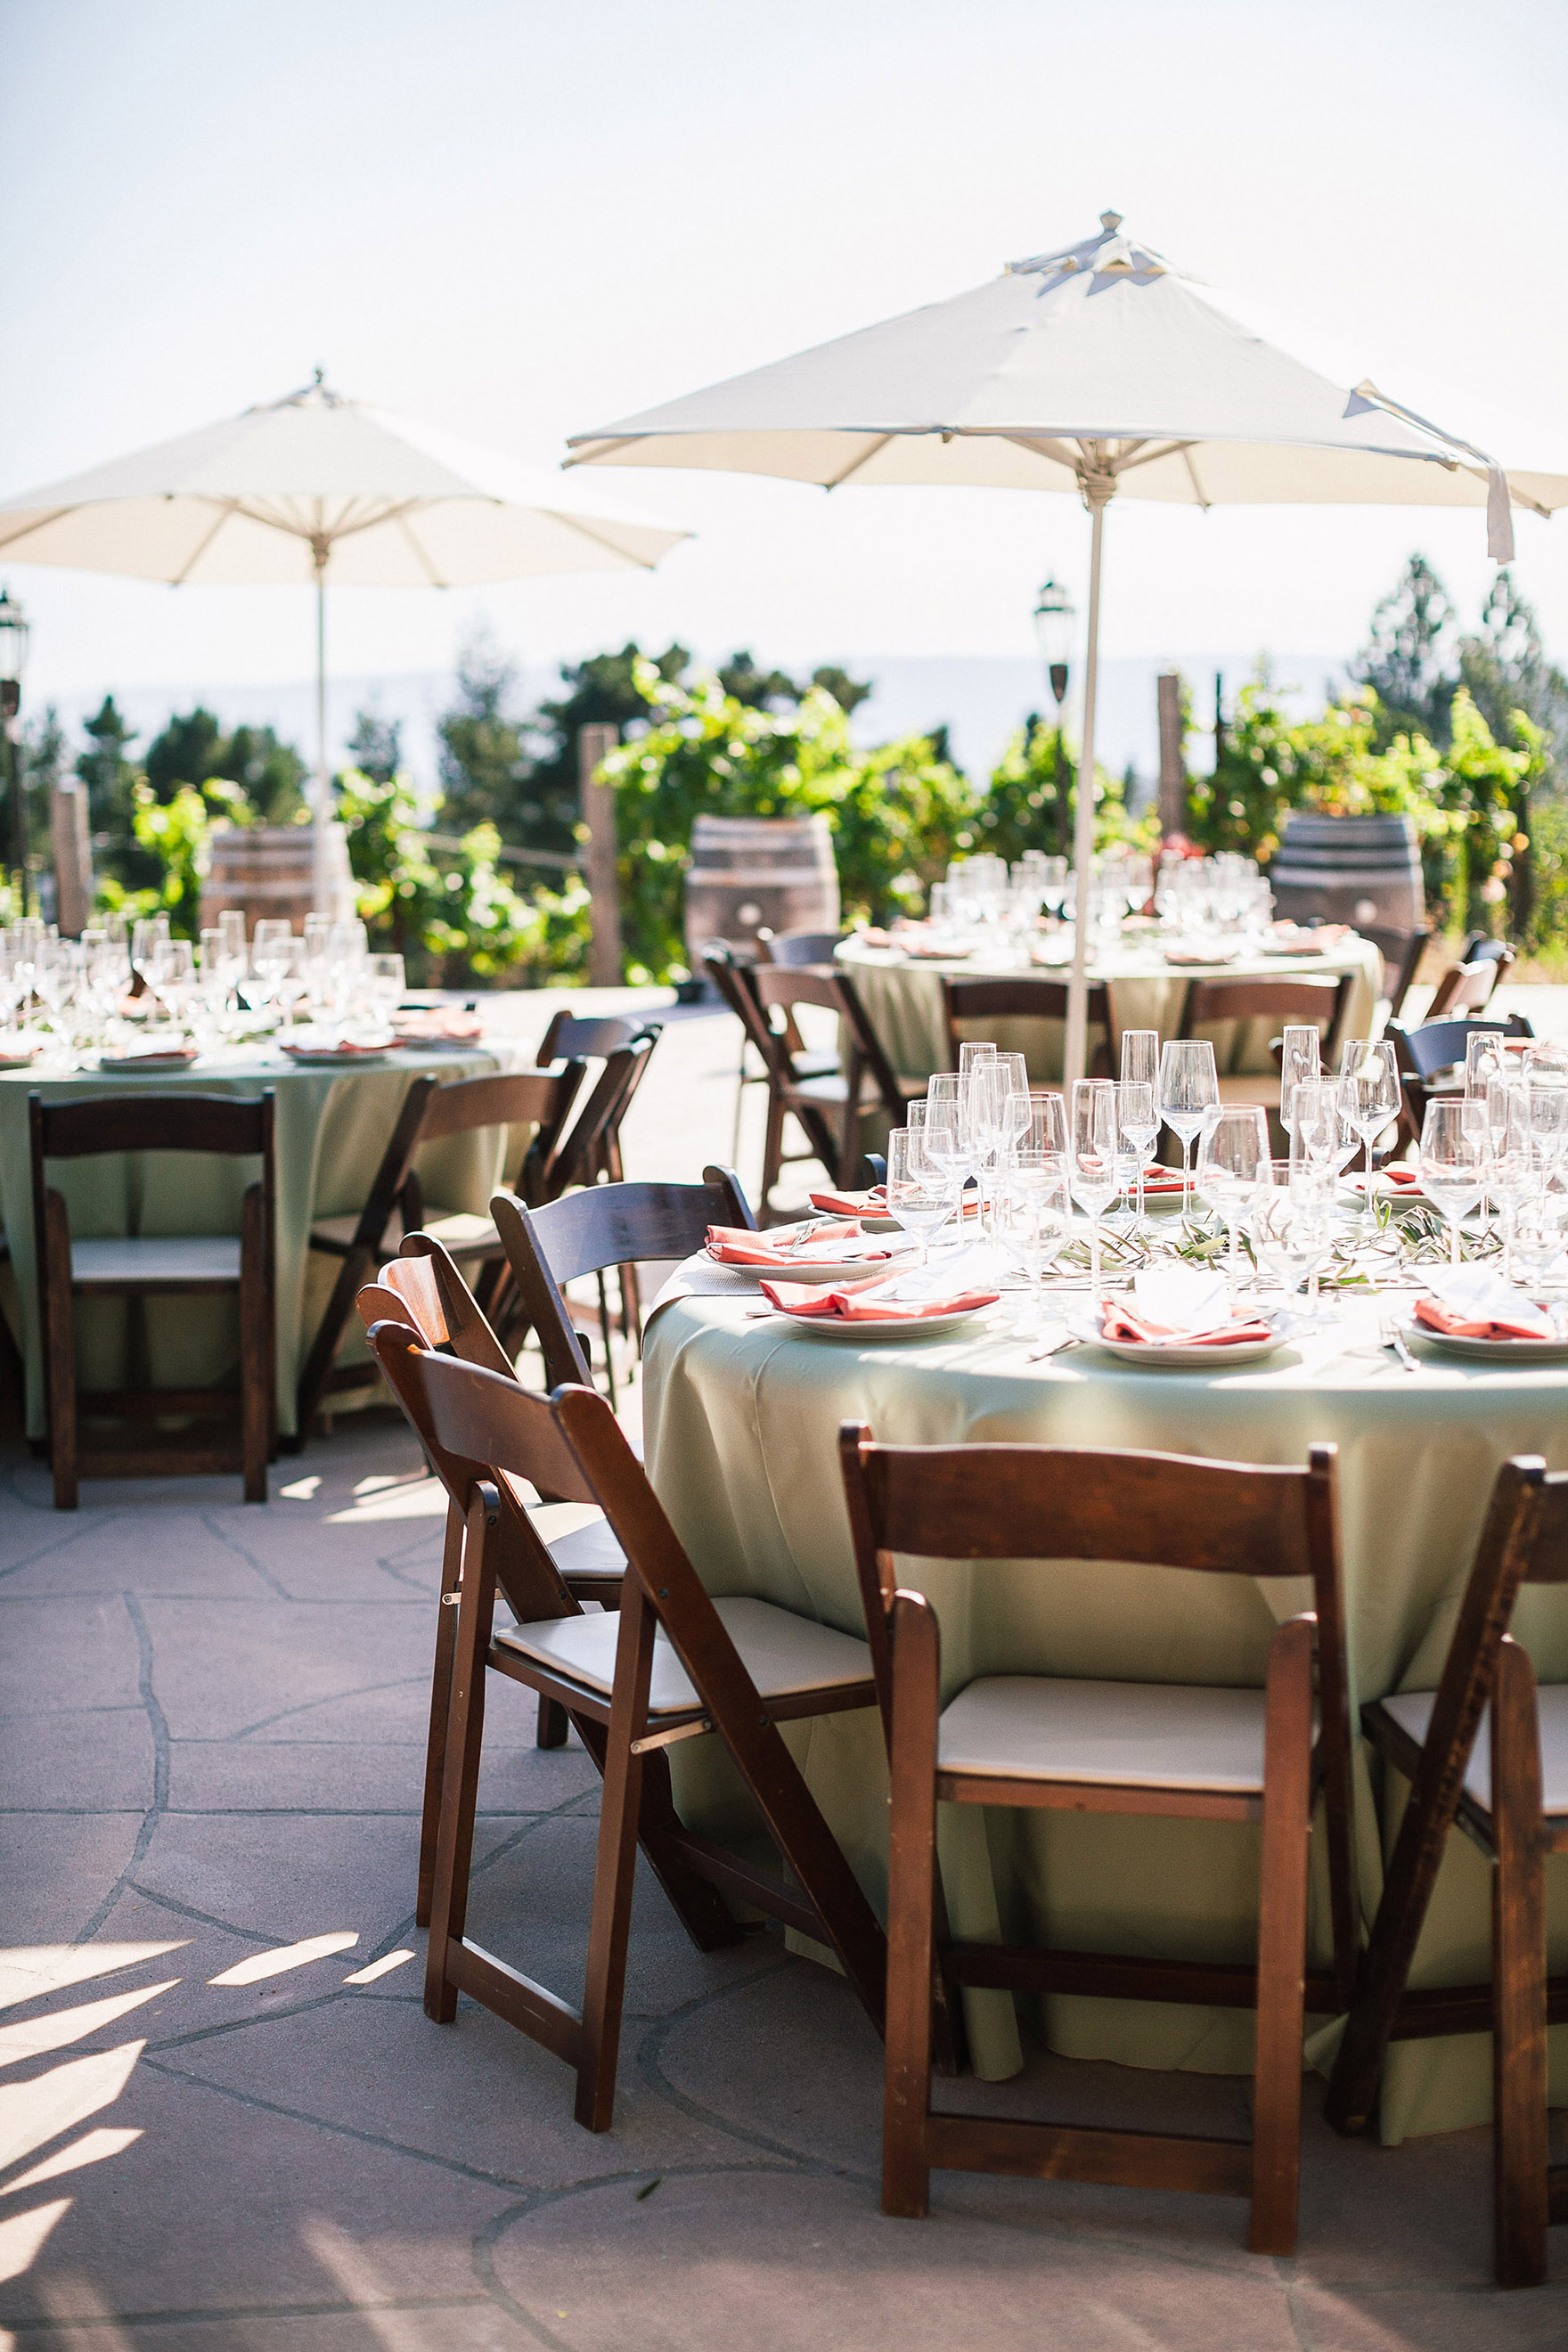 tables settings ready for wedding guests at the reception decor and details decorate the tables and chairs with shade from umbrellas redwood ridge estate wedding redwood ridge wedding the perfect santa cruz wedding venue los gatos wedding venue